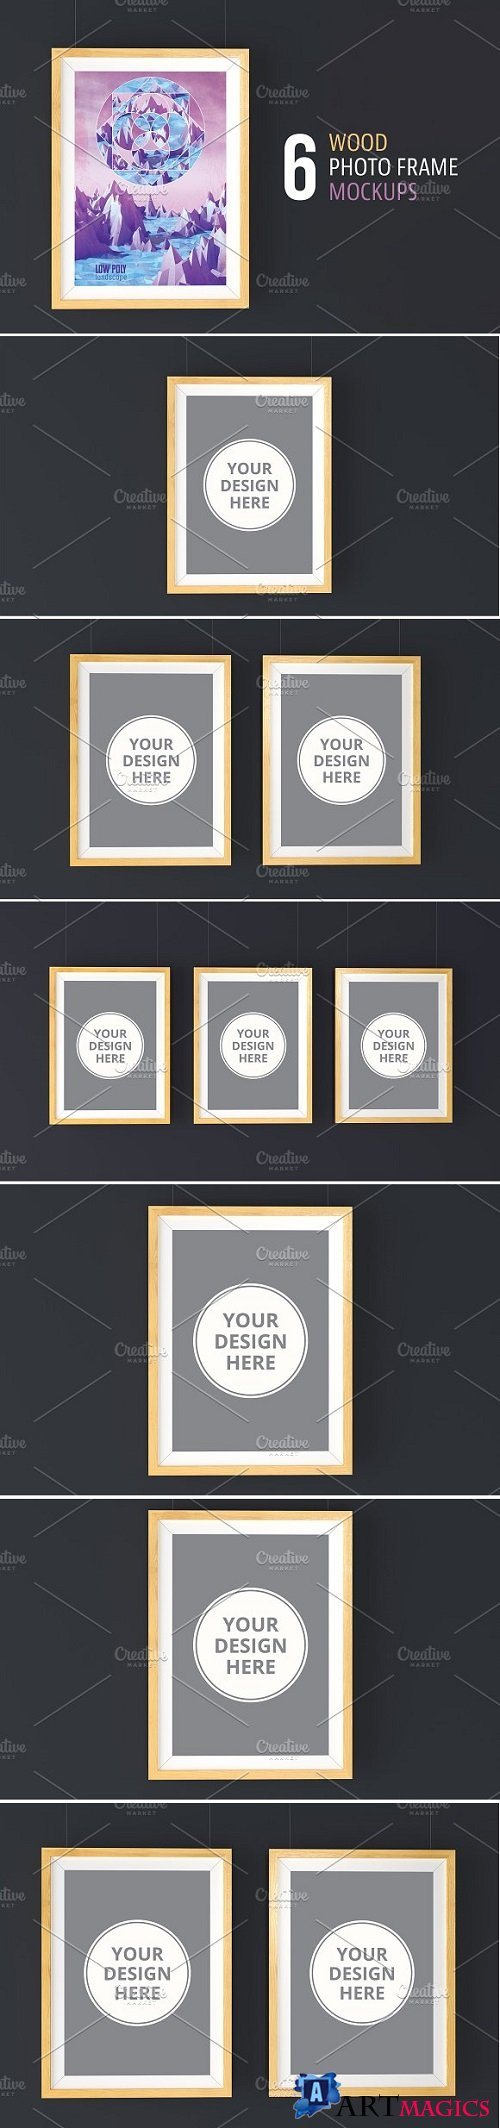 6 Wood Photo Frame Mockups 2219718